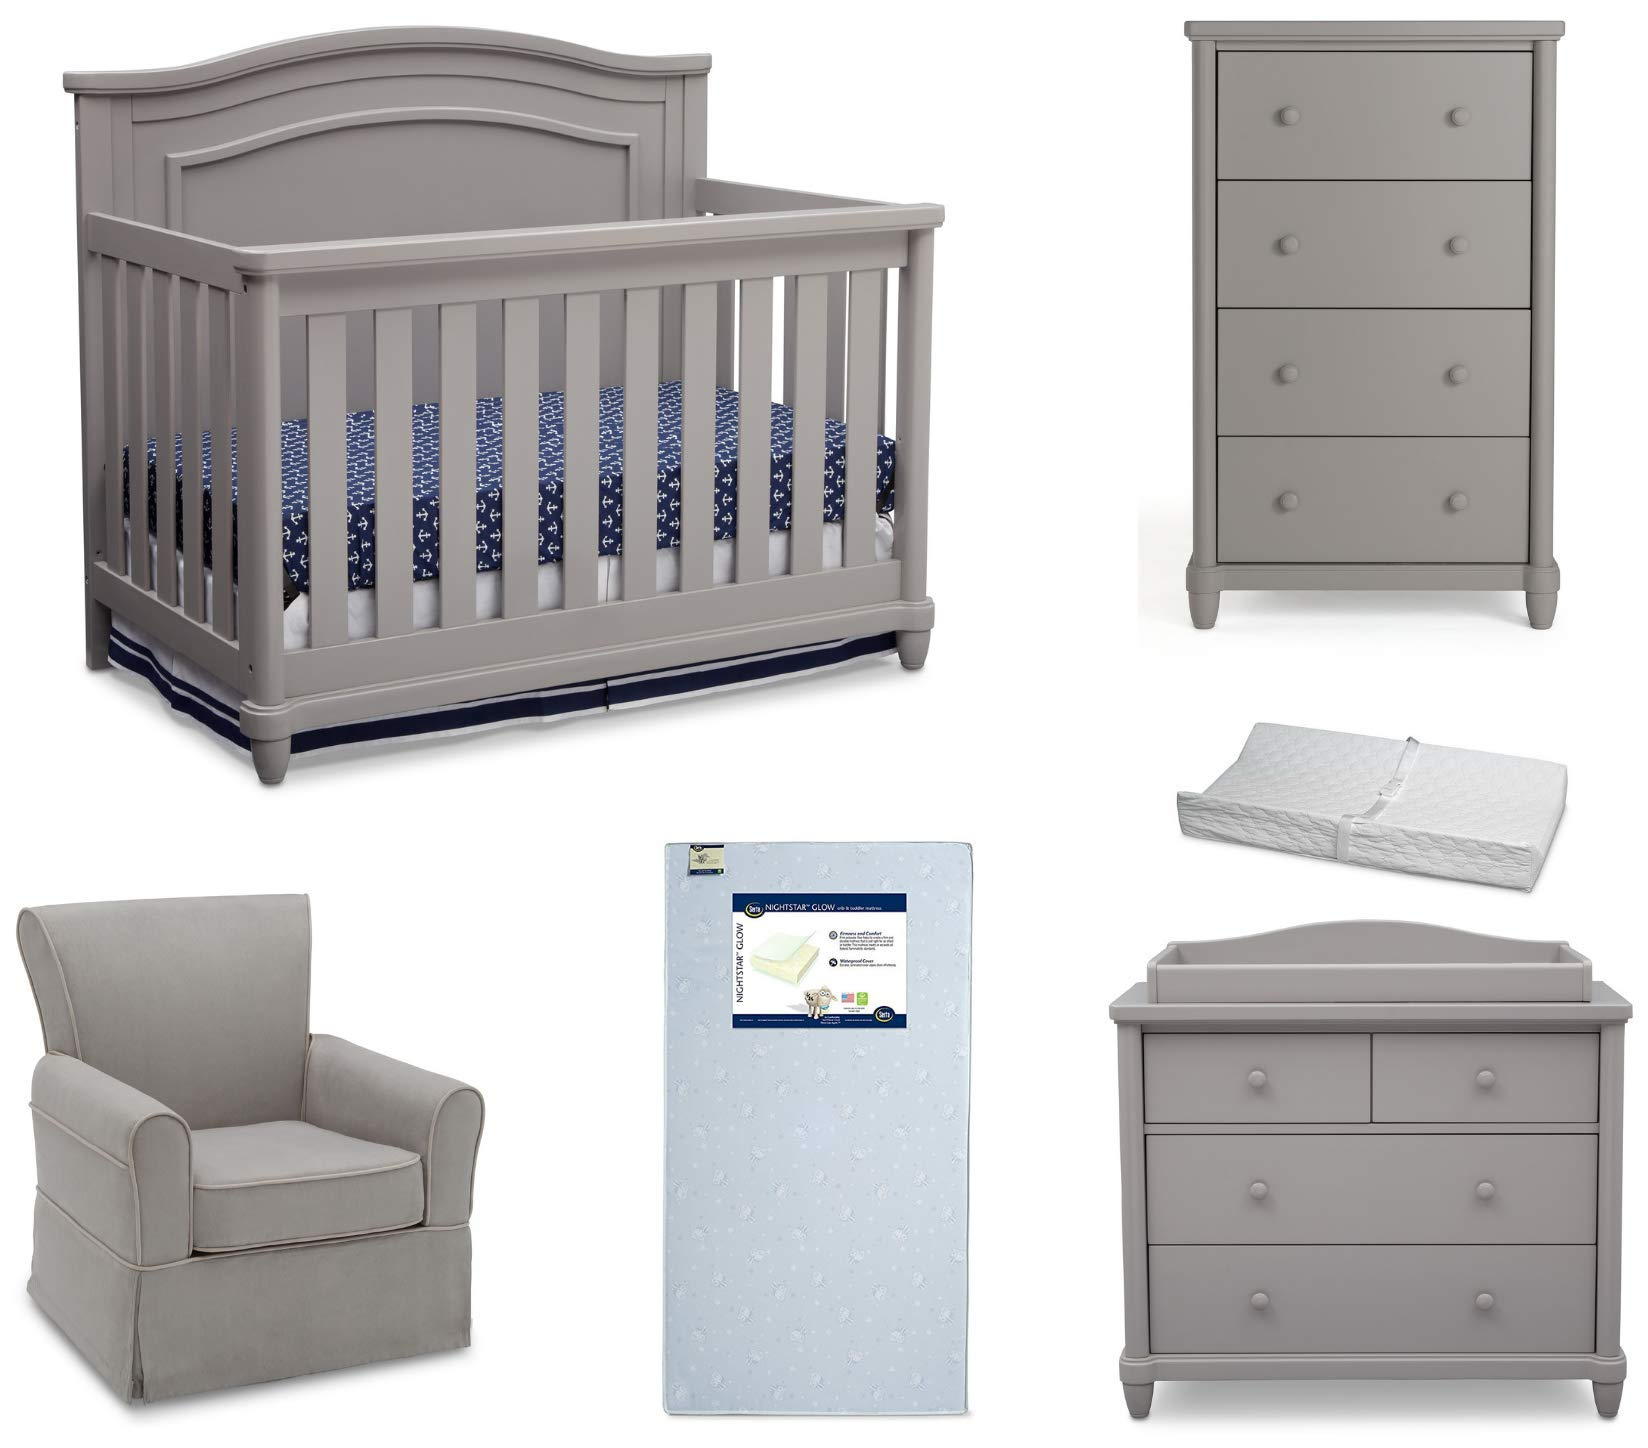 Simmons Kids Belmont 6-Piece Nursery Furniture Set | Includes: Convertible Baby Crib | Dresser with Changing Topper | Tall Chest | Glider | Crib Mattress | Changing Pad, Grey by Delta Children